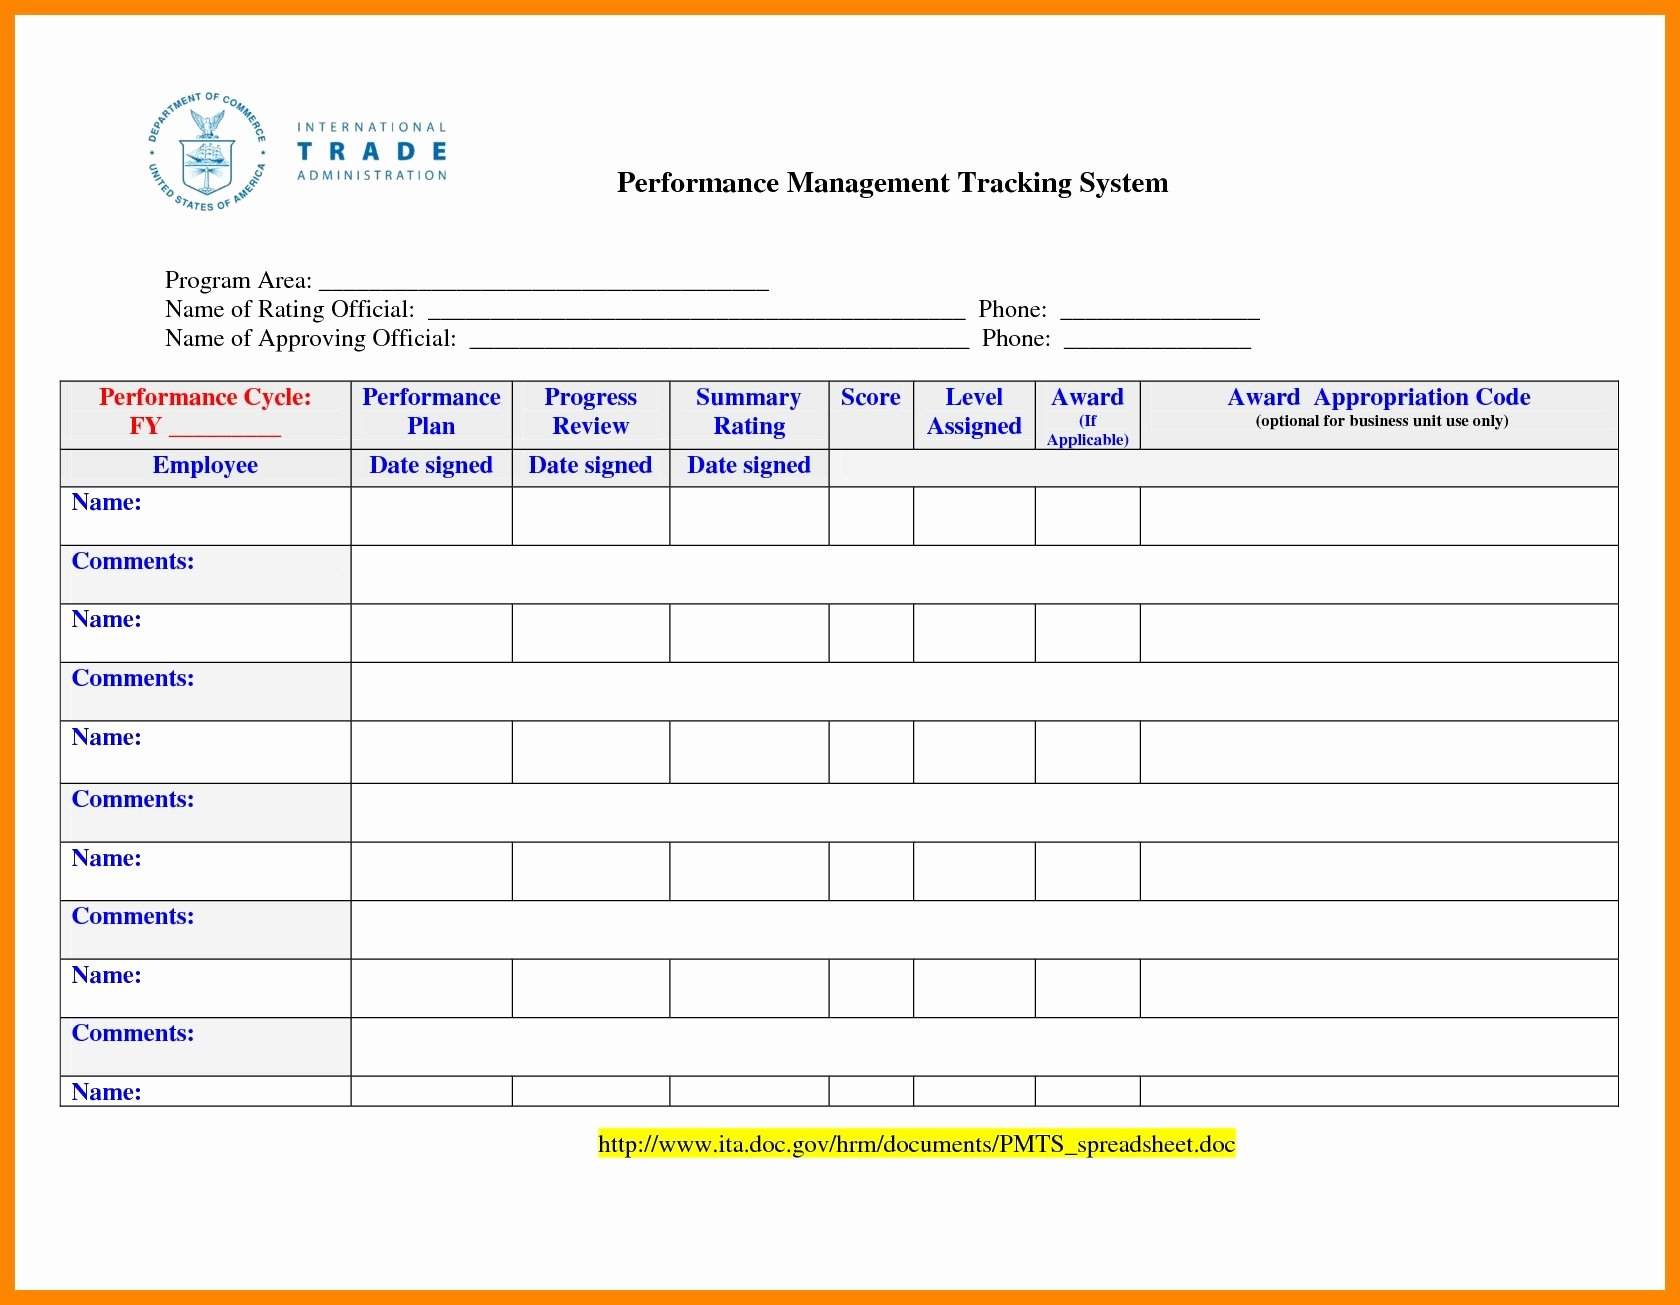 Employee Performance Tracking Template Luxury How to Track Employee Performance Spreadsheet as Free